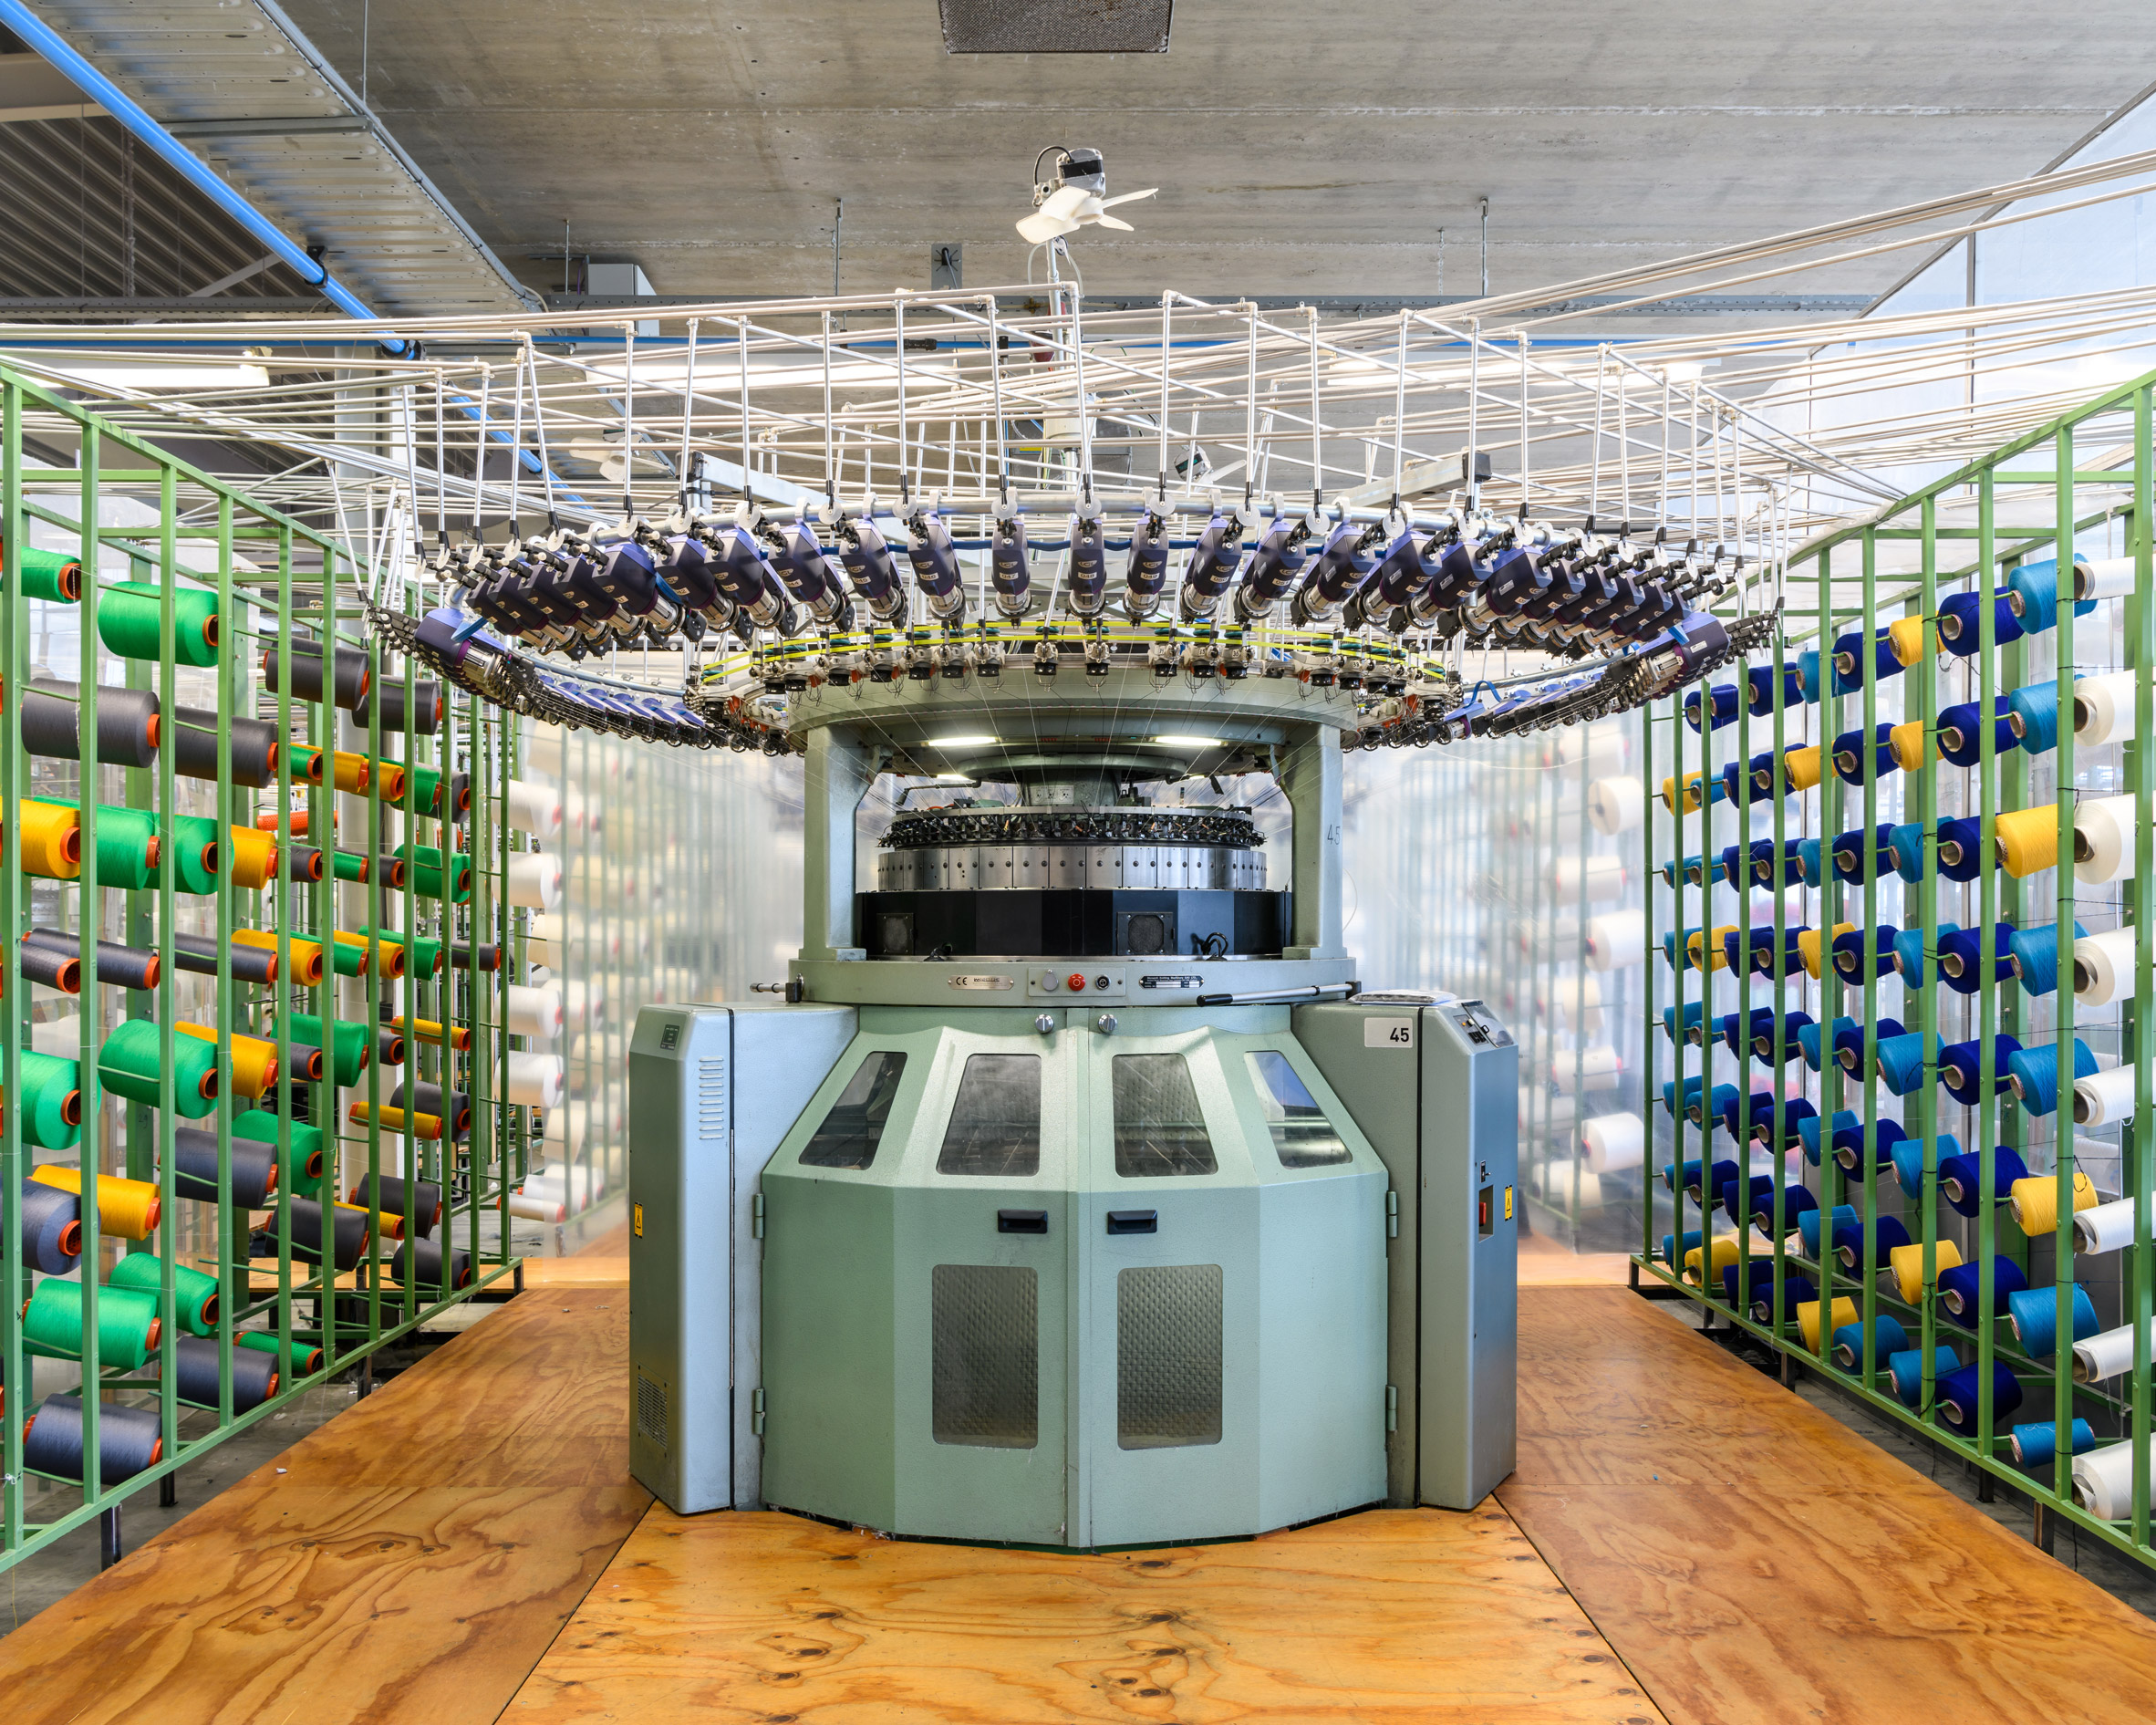 Alastair Philip Wiper, Circular knitting machine at Kvadrat Febrik 's Innofa textile mill, Netherlands